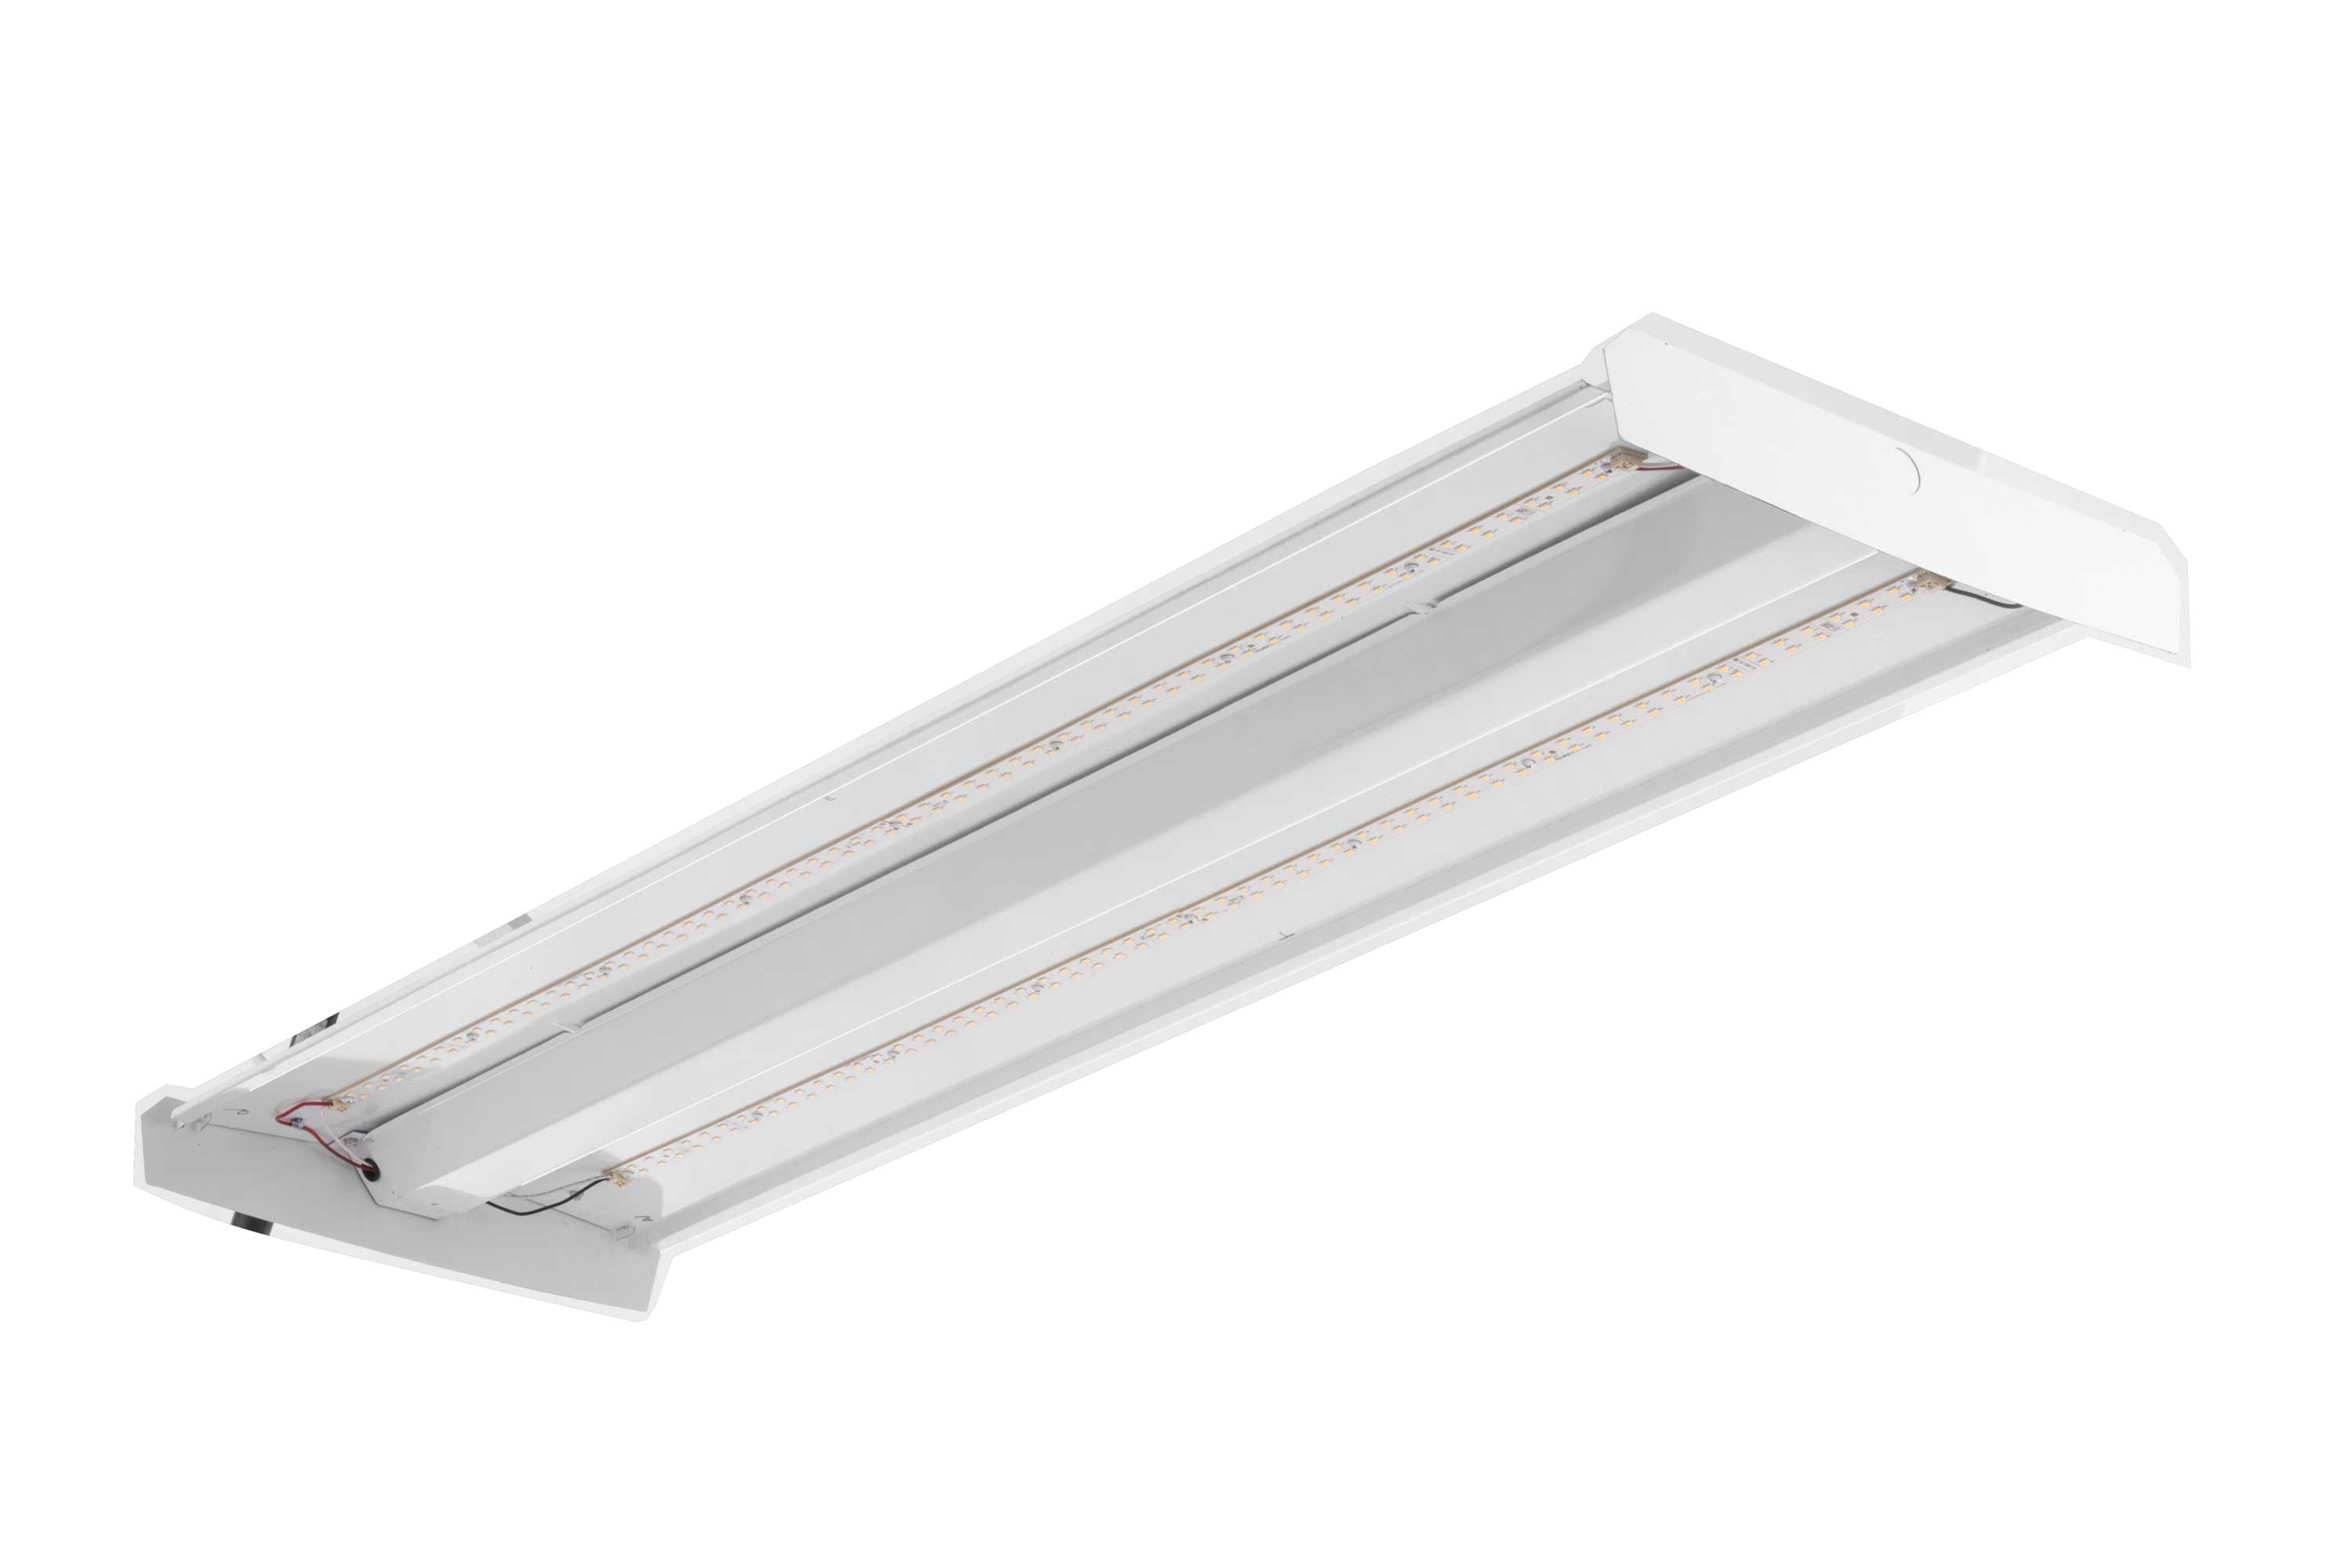 Lithonia lighting recalls to repair ceiling light fixtures due to recalled lithonia lighting lbl4w model ceiling light fixture without the lens arubaitofo Image collections